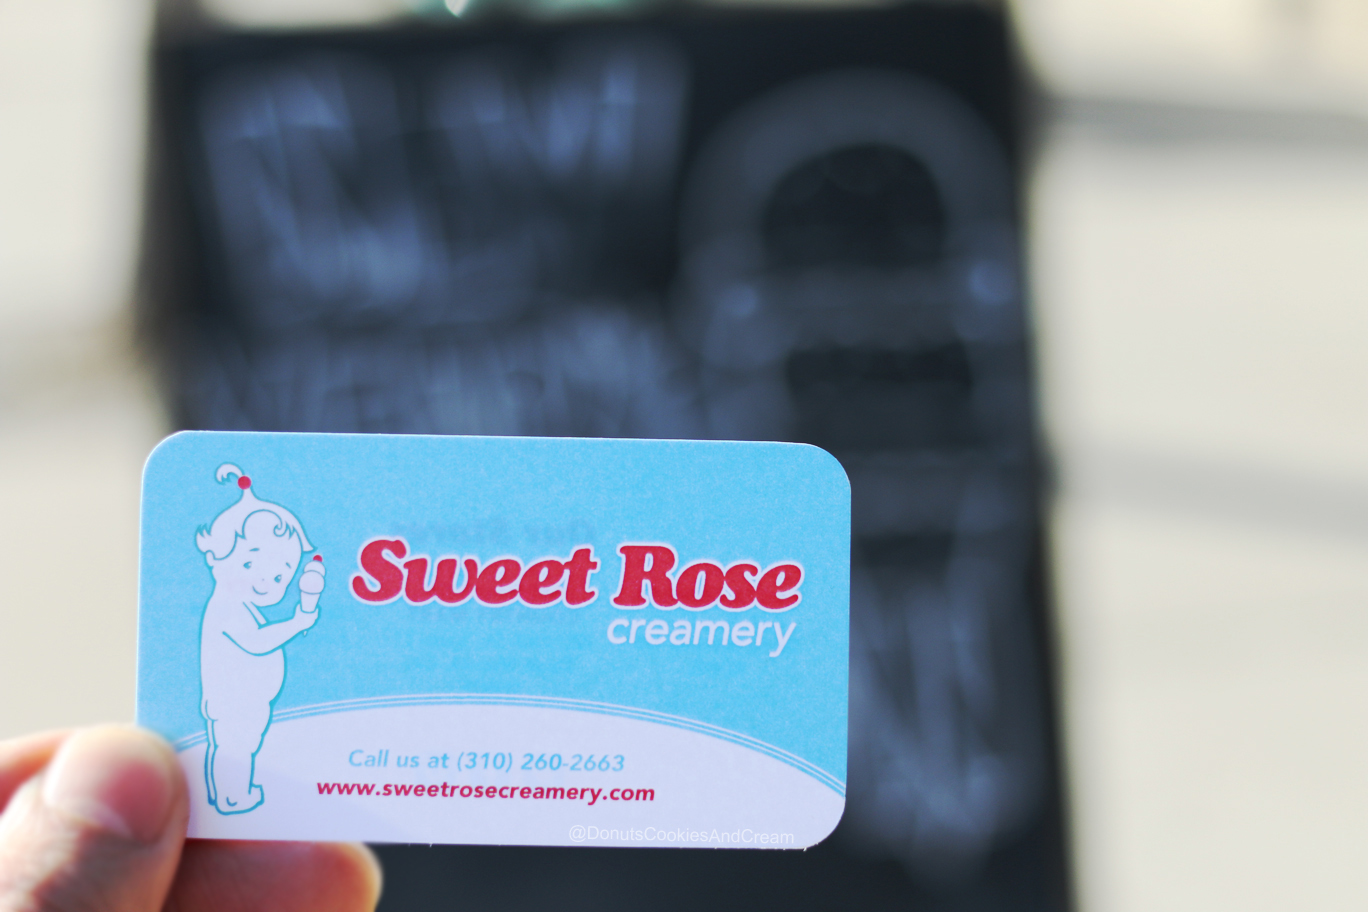 Sweet Rose Creamery Card1 Shop til you drop, and then stop at Sweet Rose Creamery